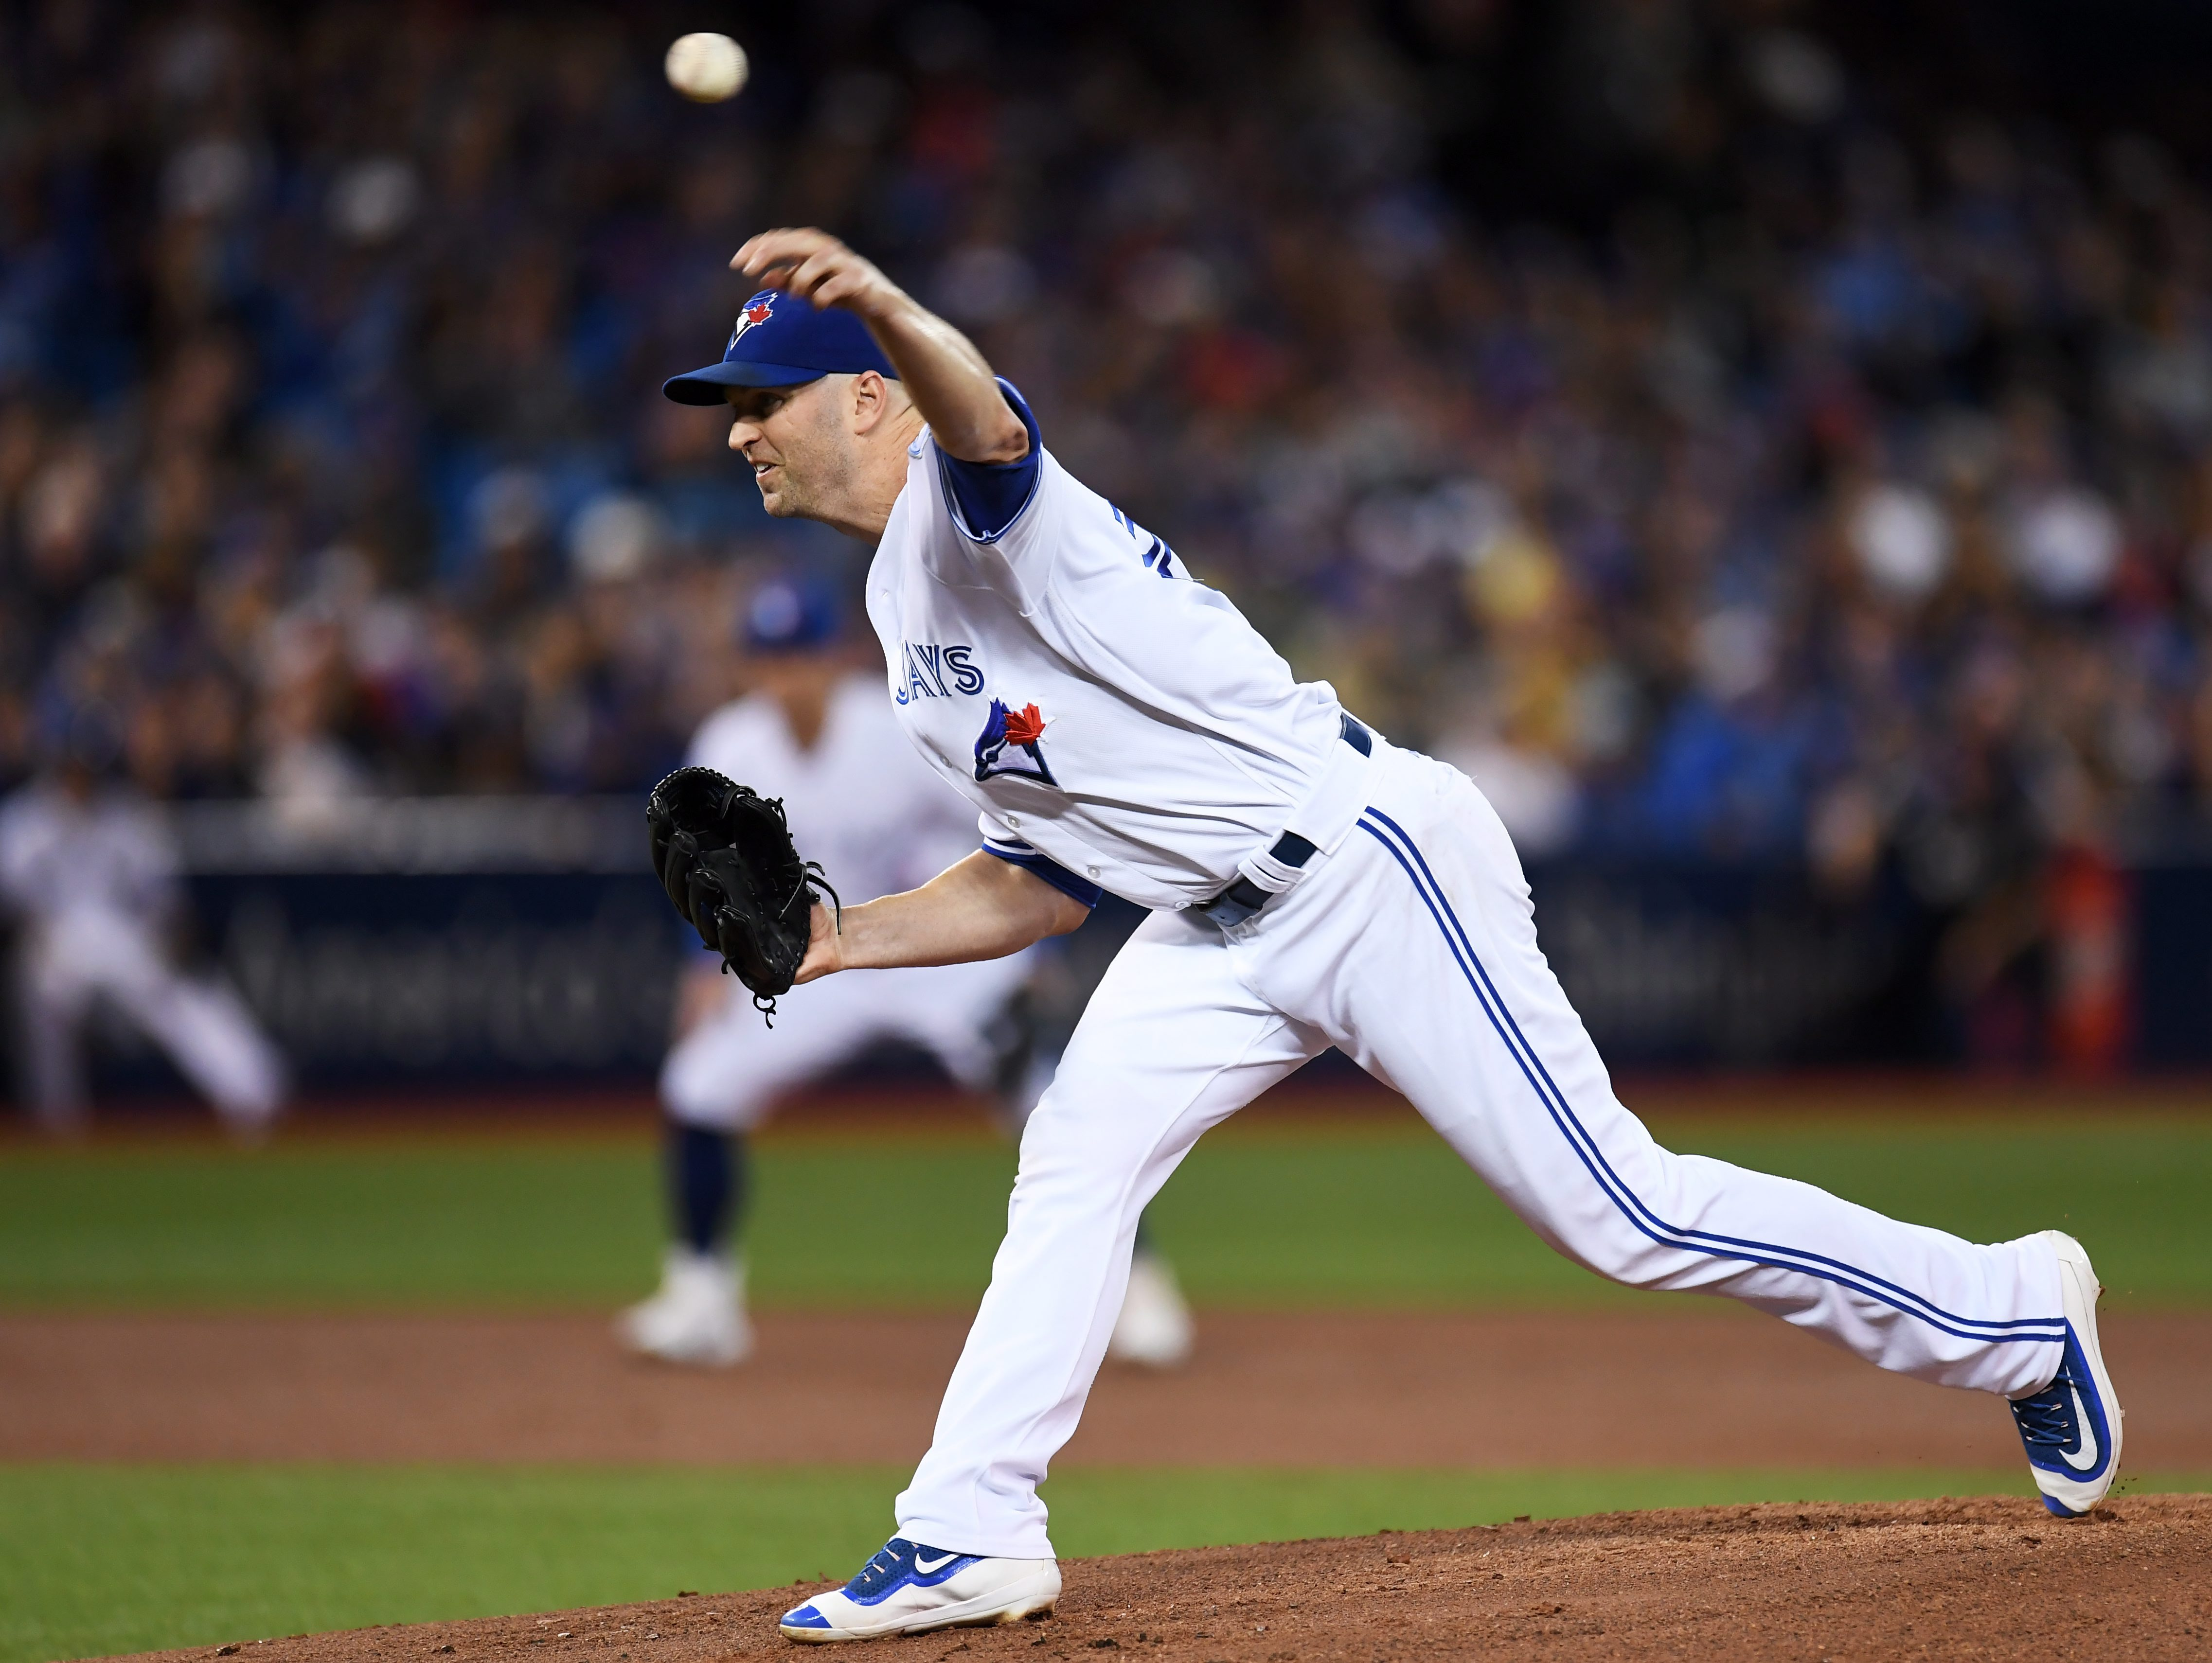 Toronto Blue Jays' J.A. Happ works against the New York Yankees during the first inning of a baseball game Monday, Sept. 26, 2016, in Toronto. (Frank Gunn/The Canadian Press via AP)